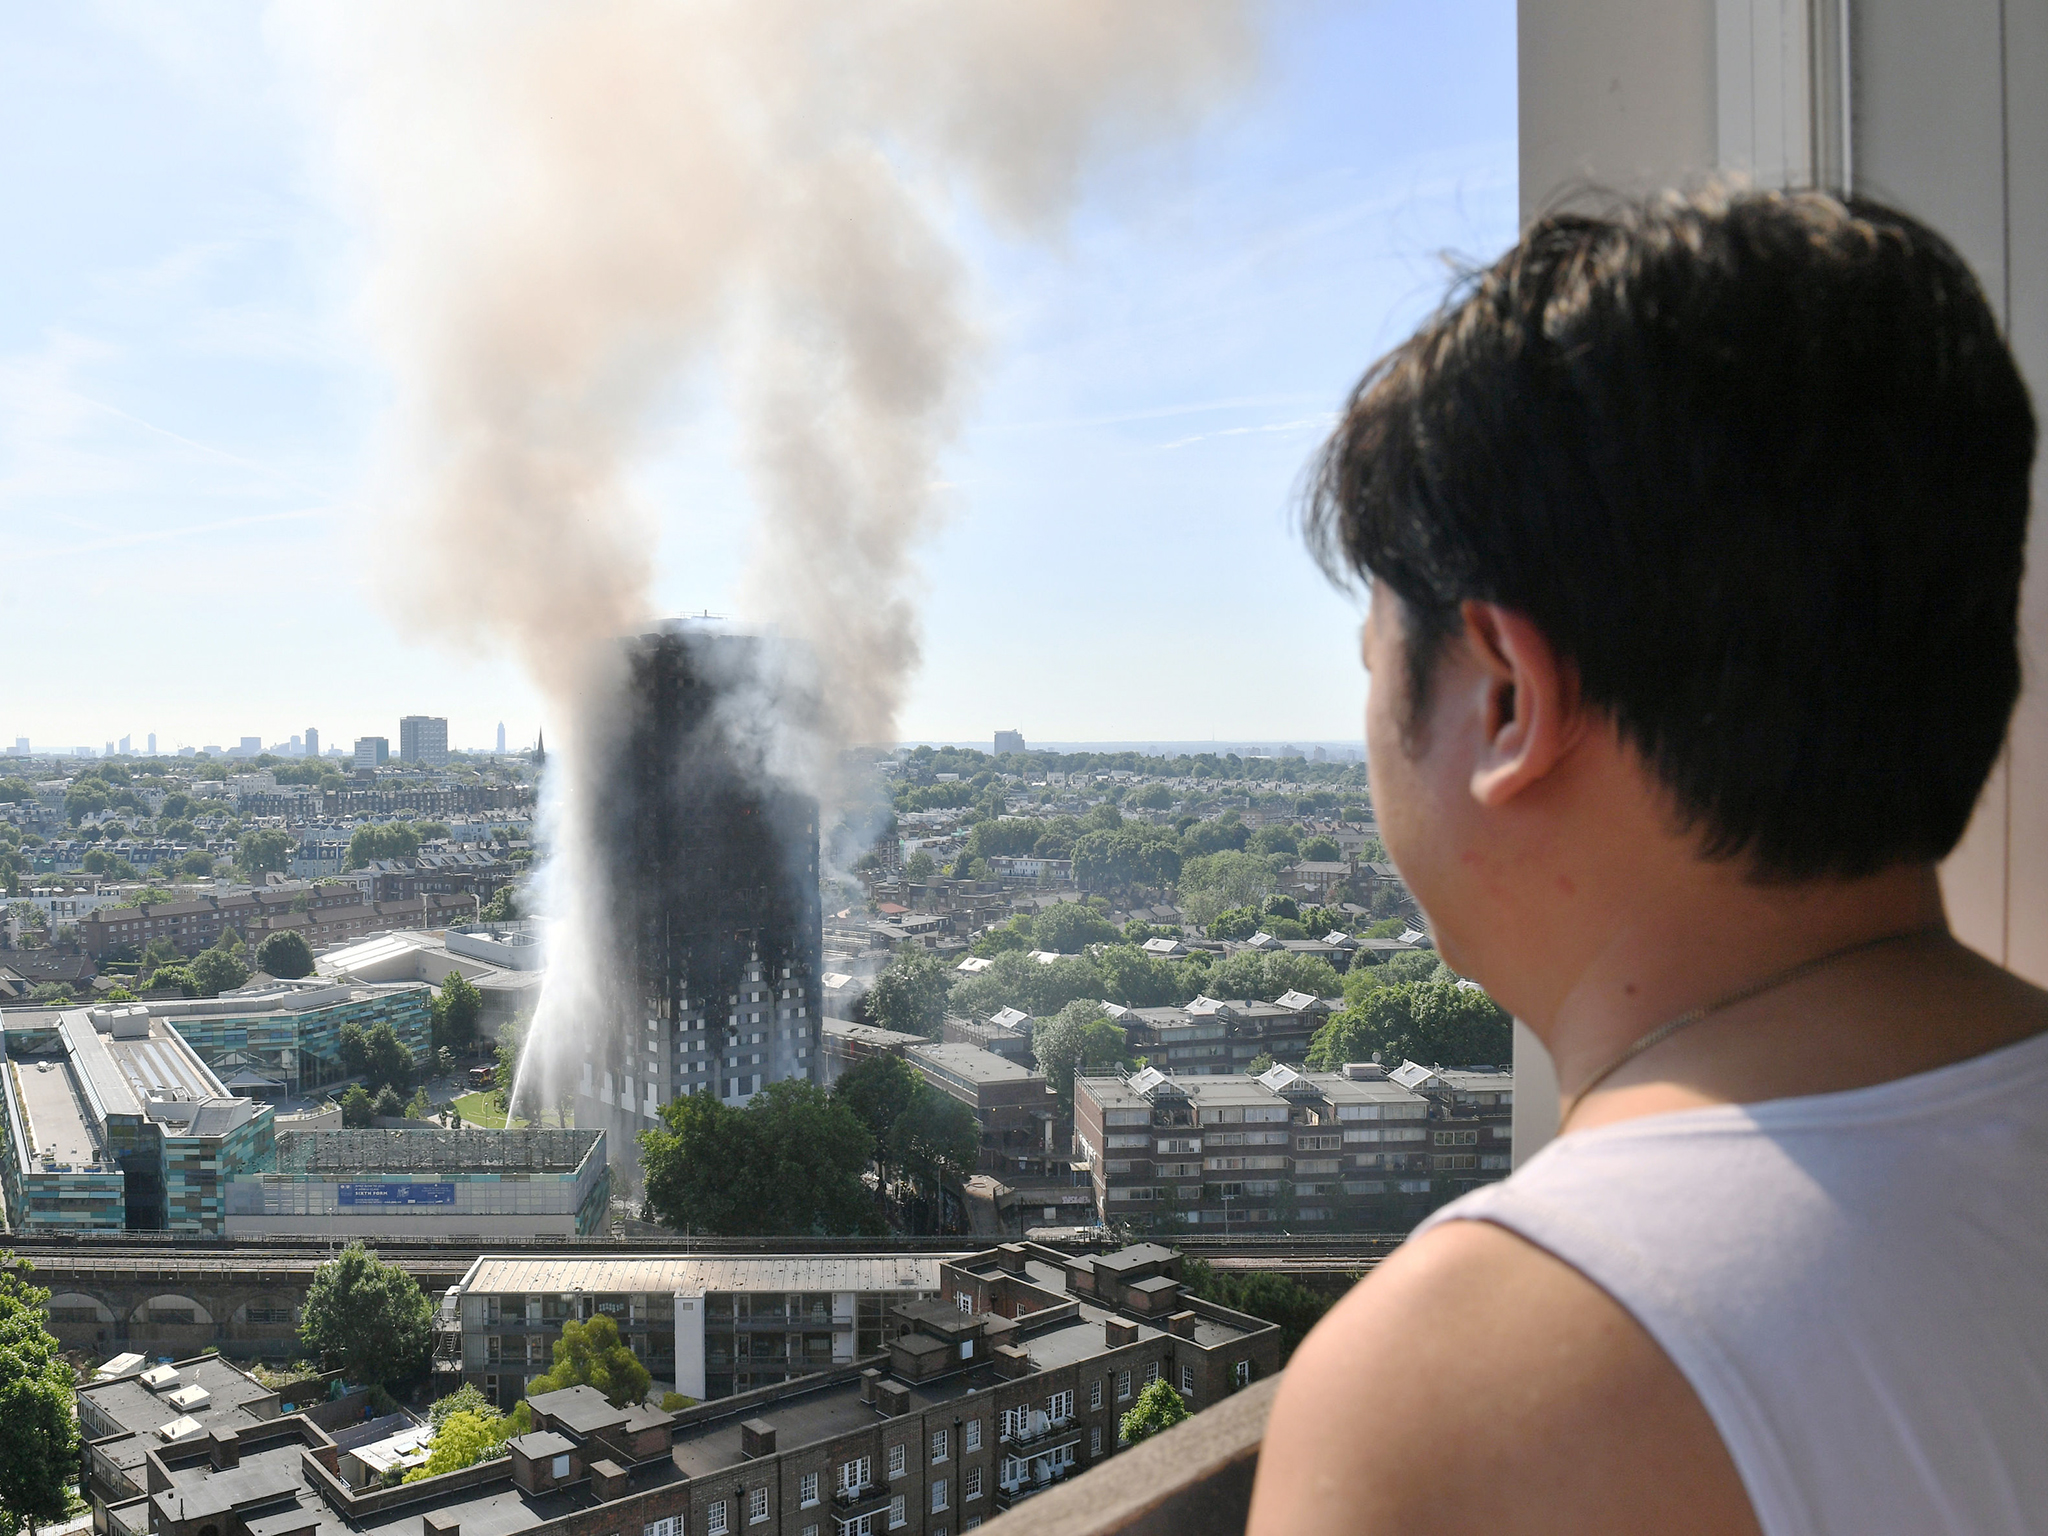 12 people have died in a west London tower block fire. All that remains of Grenfell Tower is a charred shell.. fire survivors describe horror